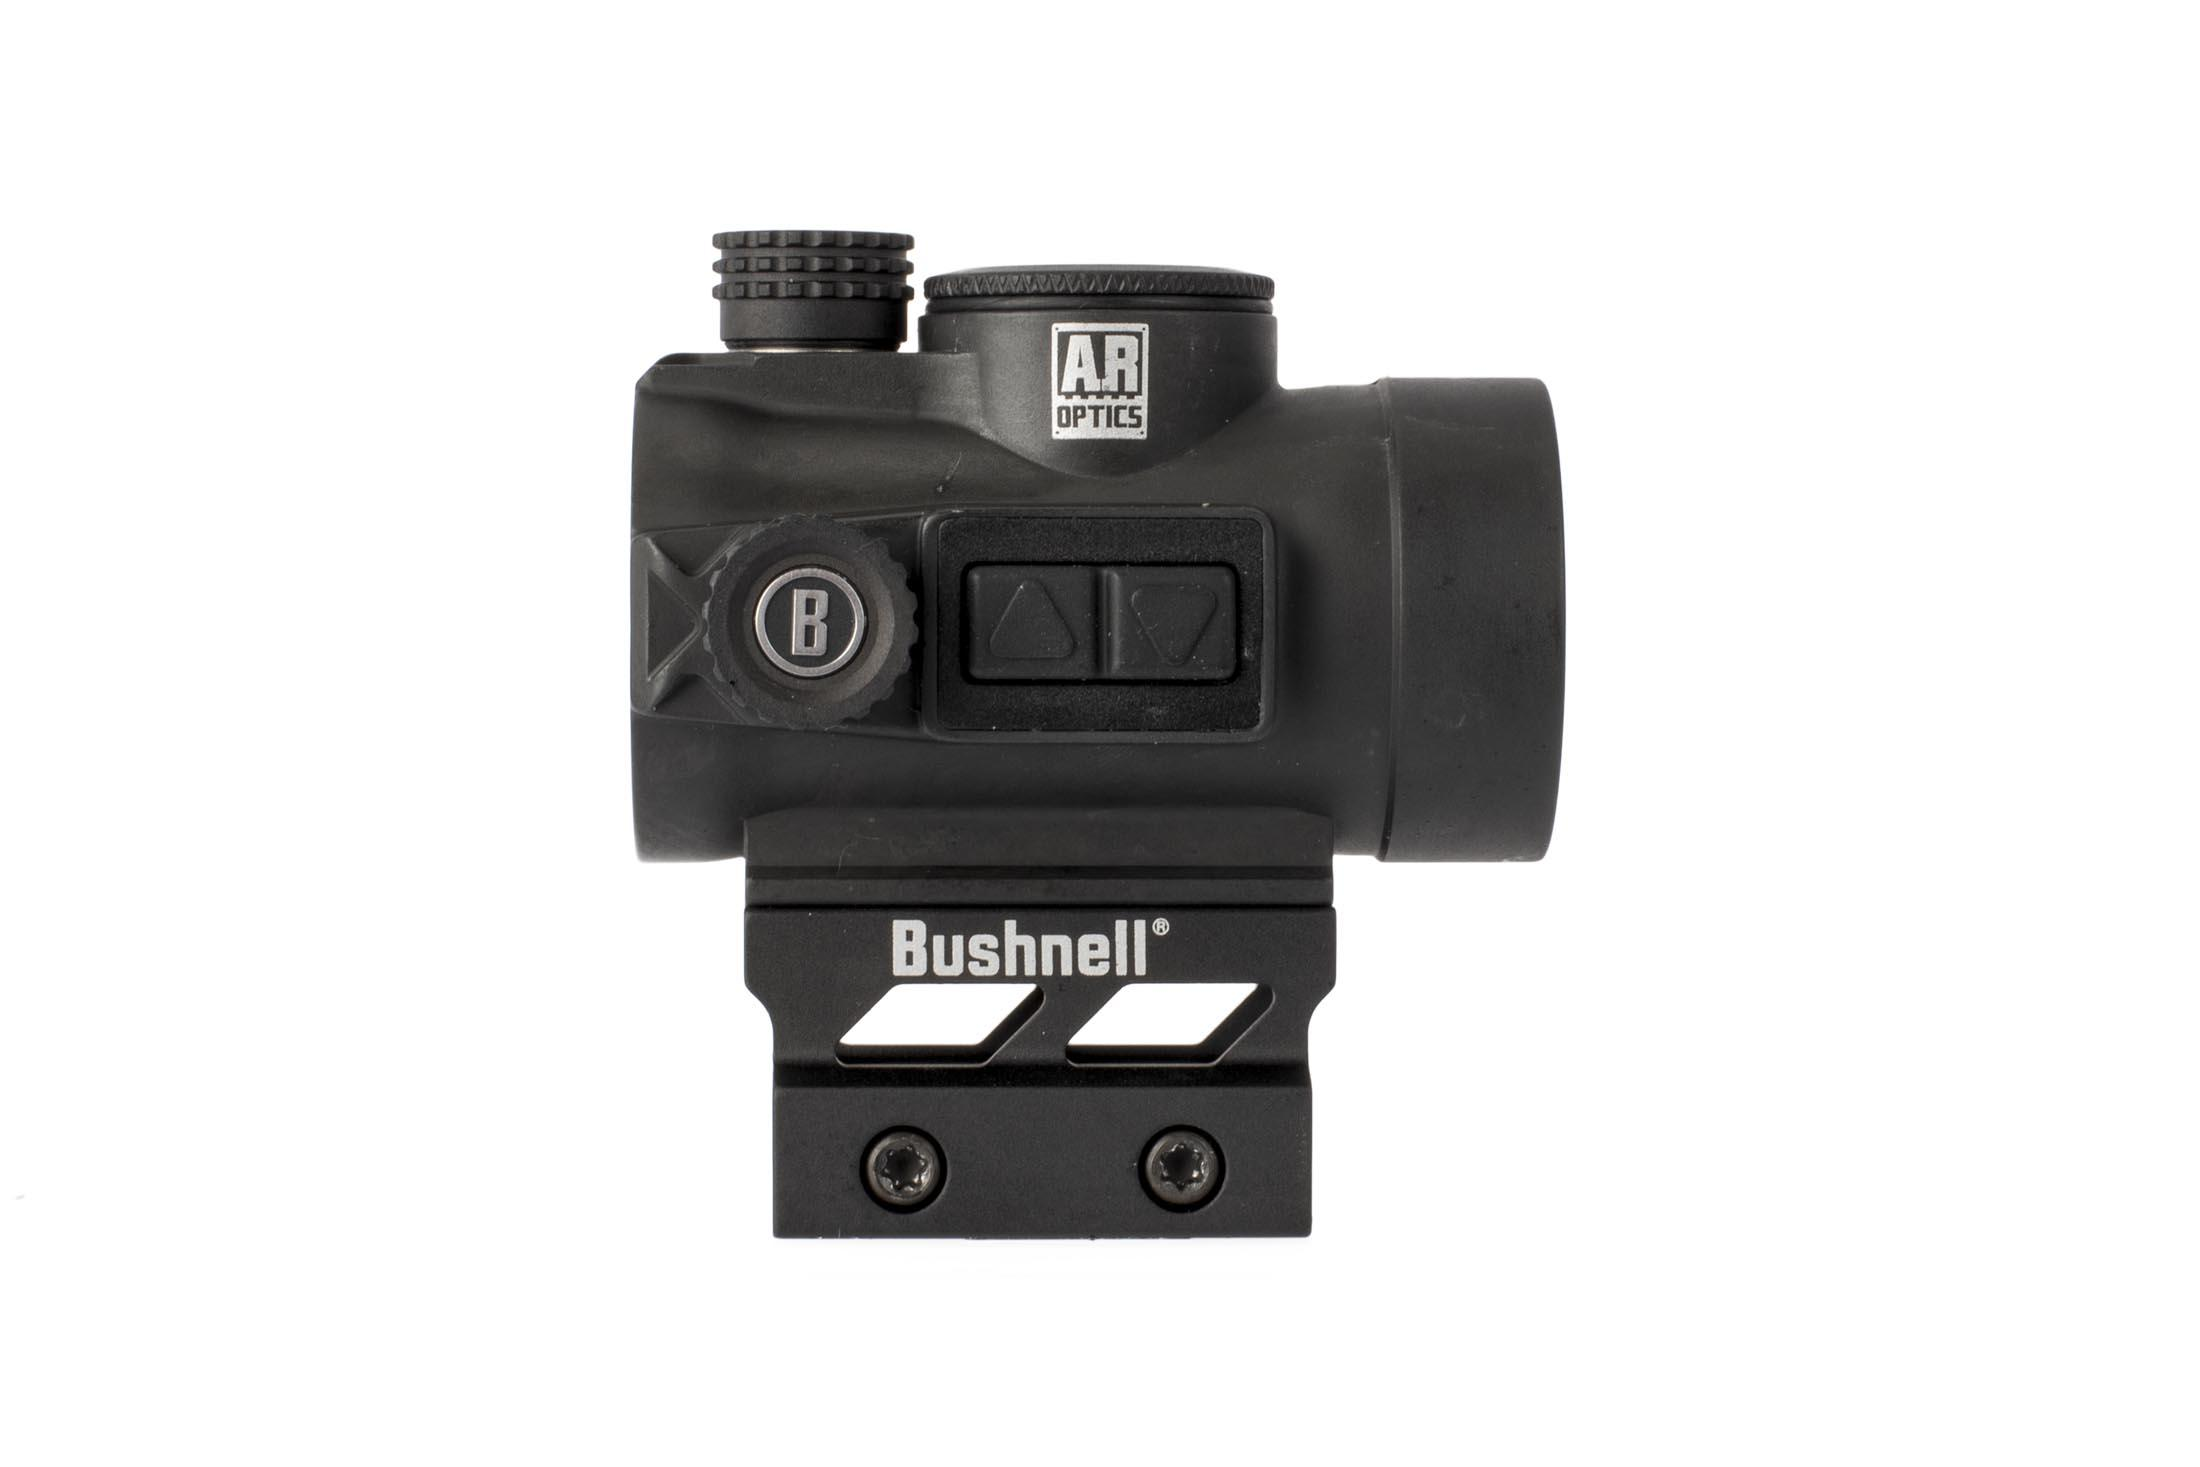 Bushnell TRS26 3 MOA red dot features push button controls on the right side of the optic's body